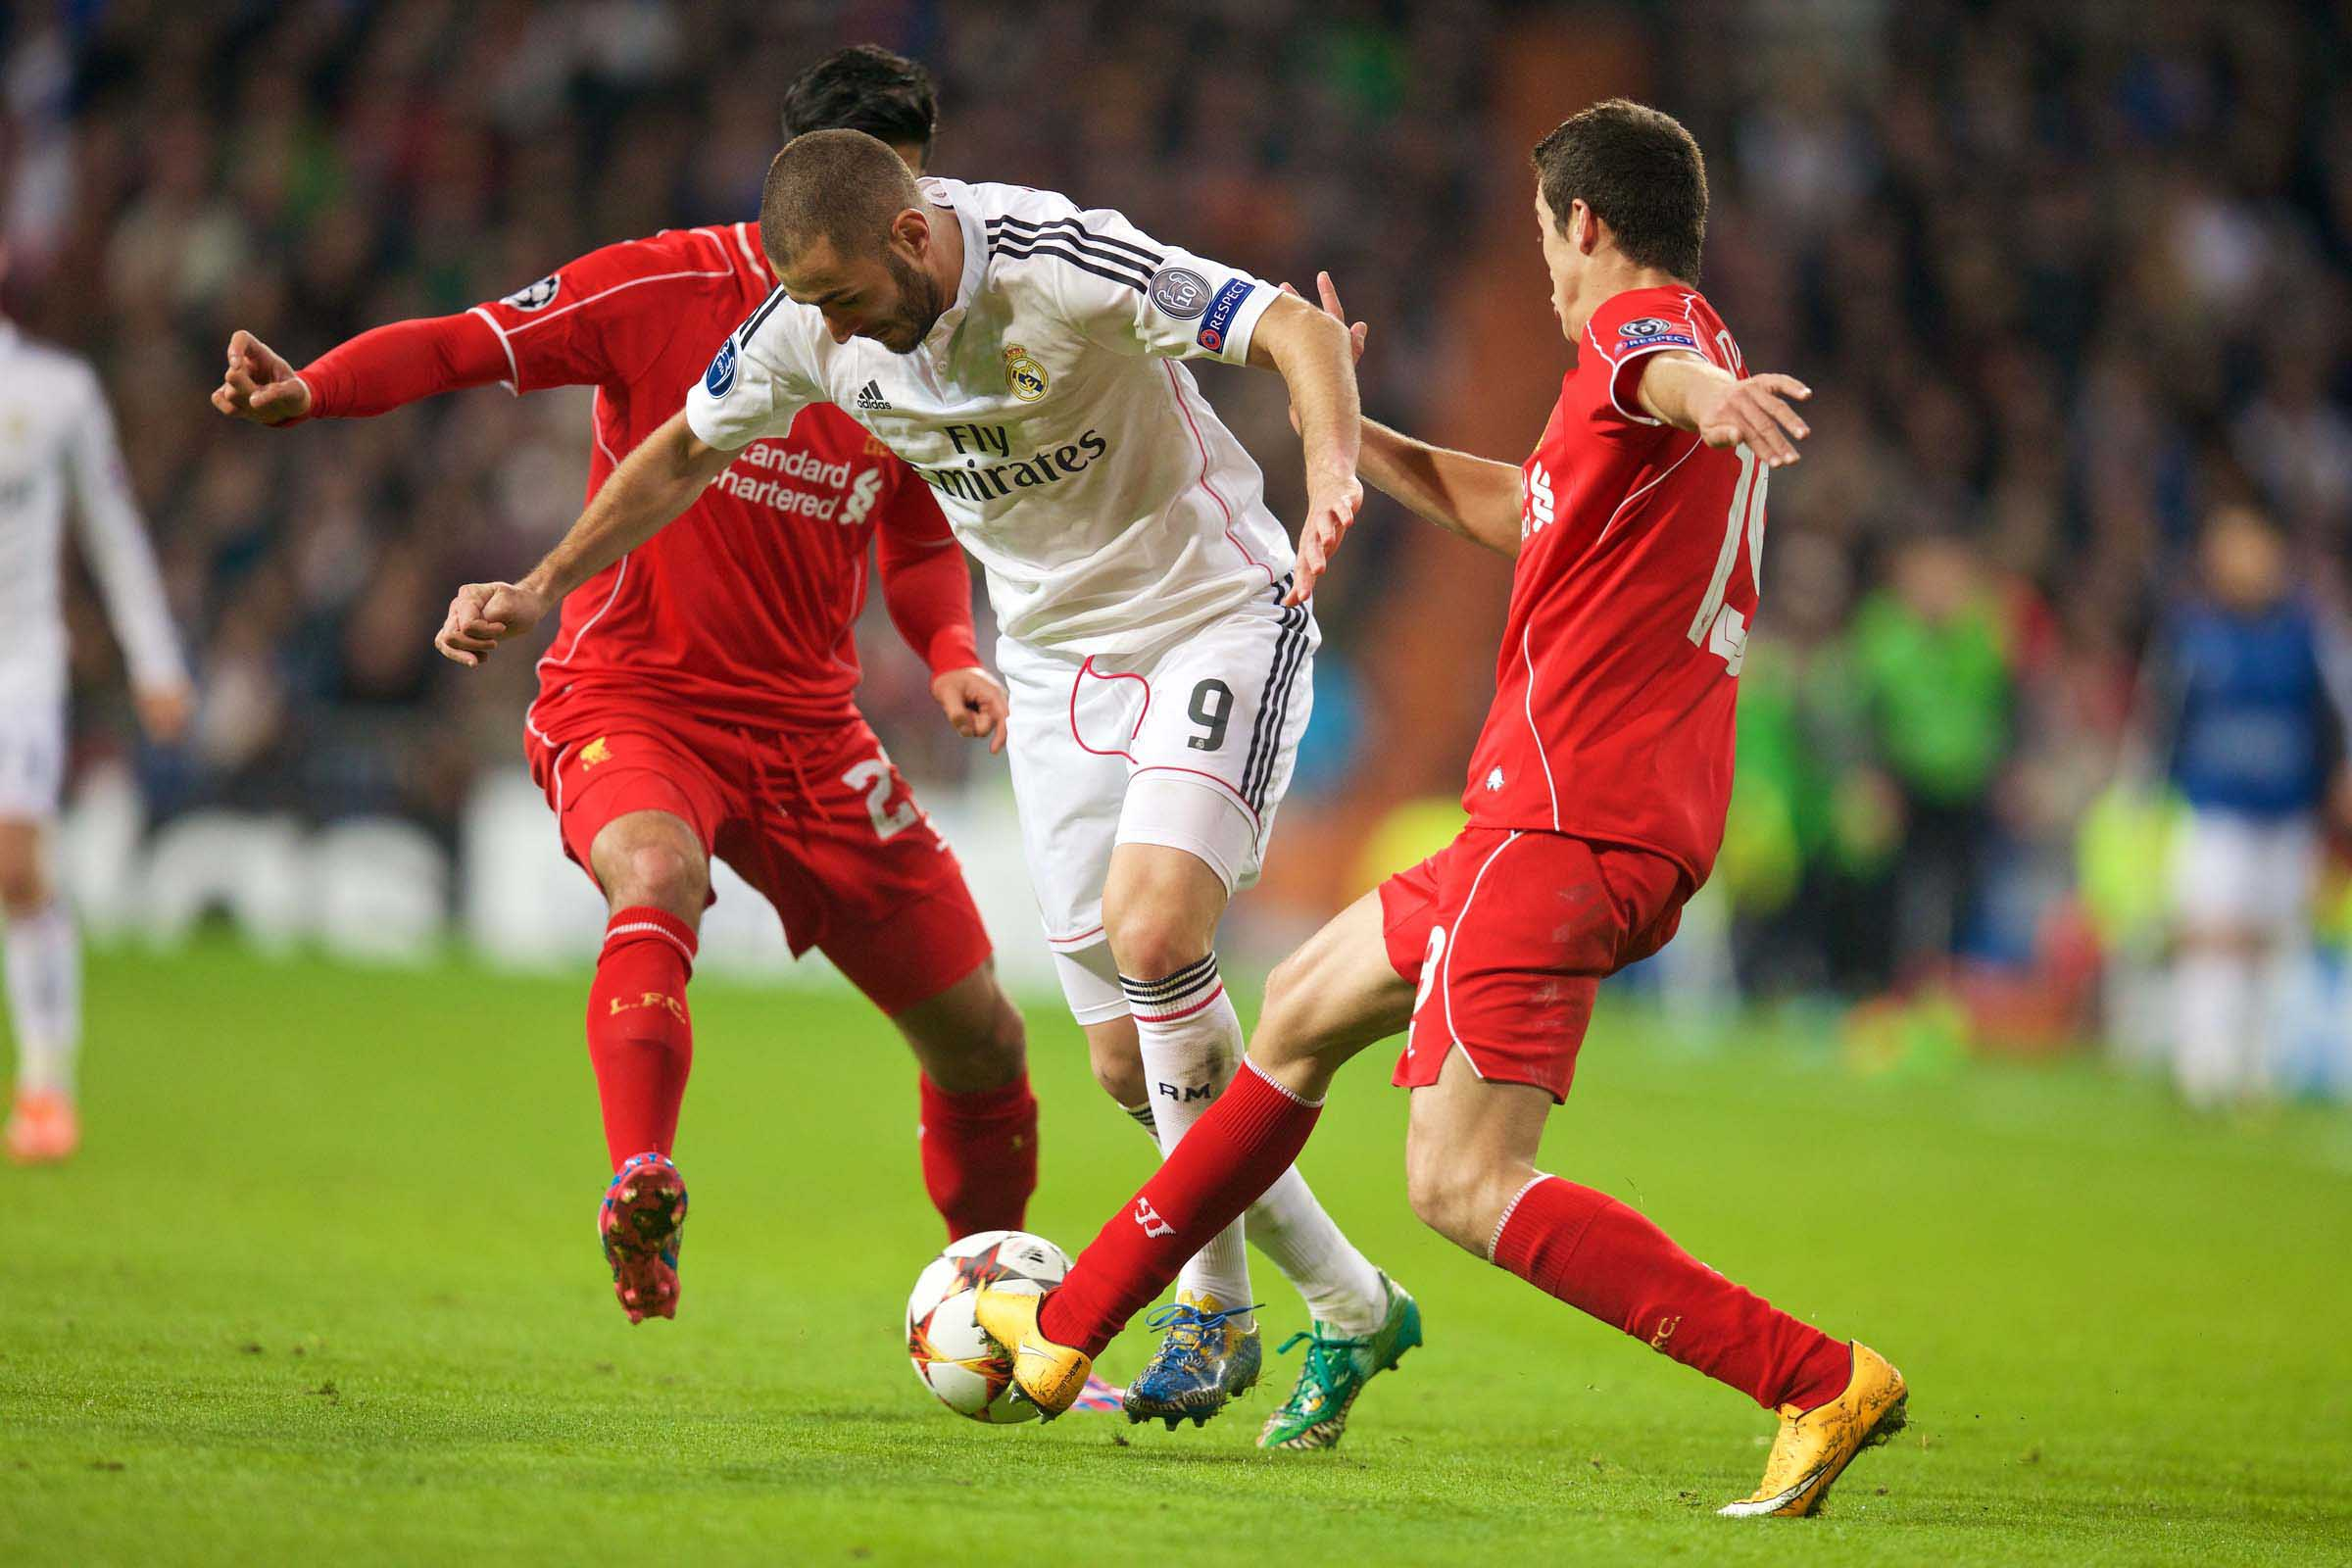 European Football - UEFA Champions League - Group B - Real Madrid CF v Liverpool FC